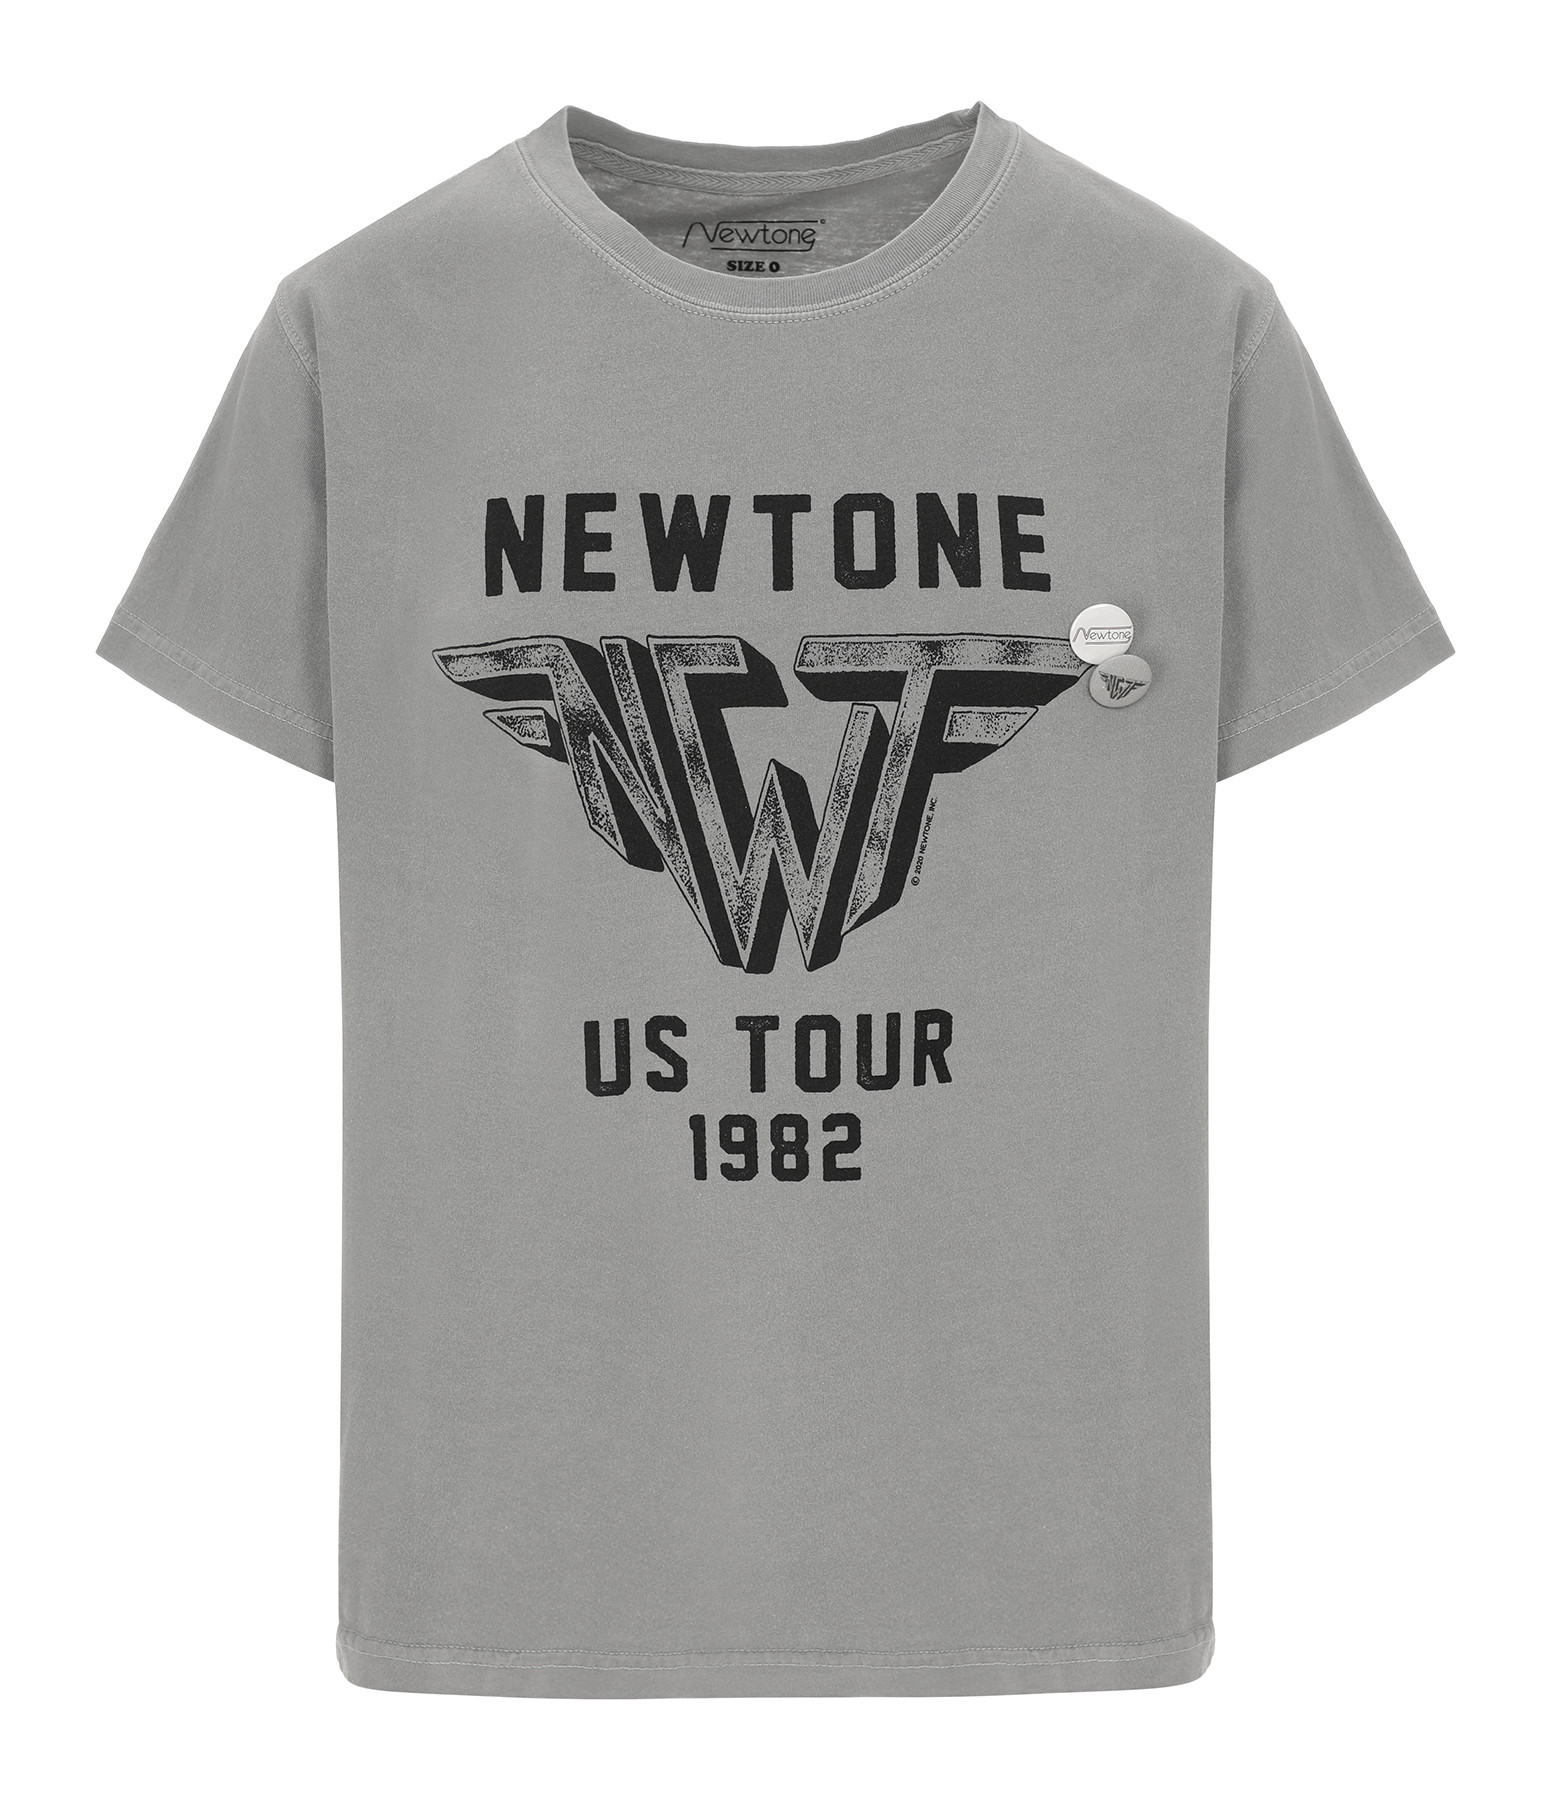 NEWTONE - Tee-shirt Wings Coton Gris